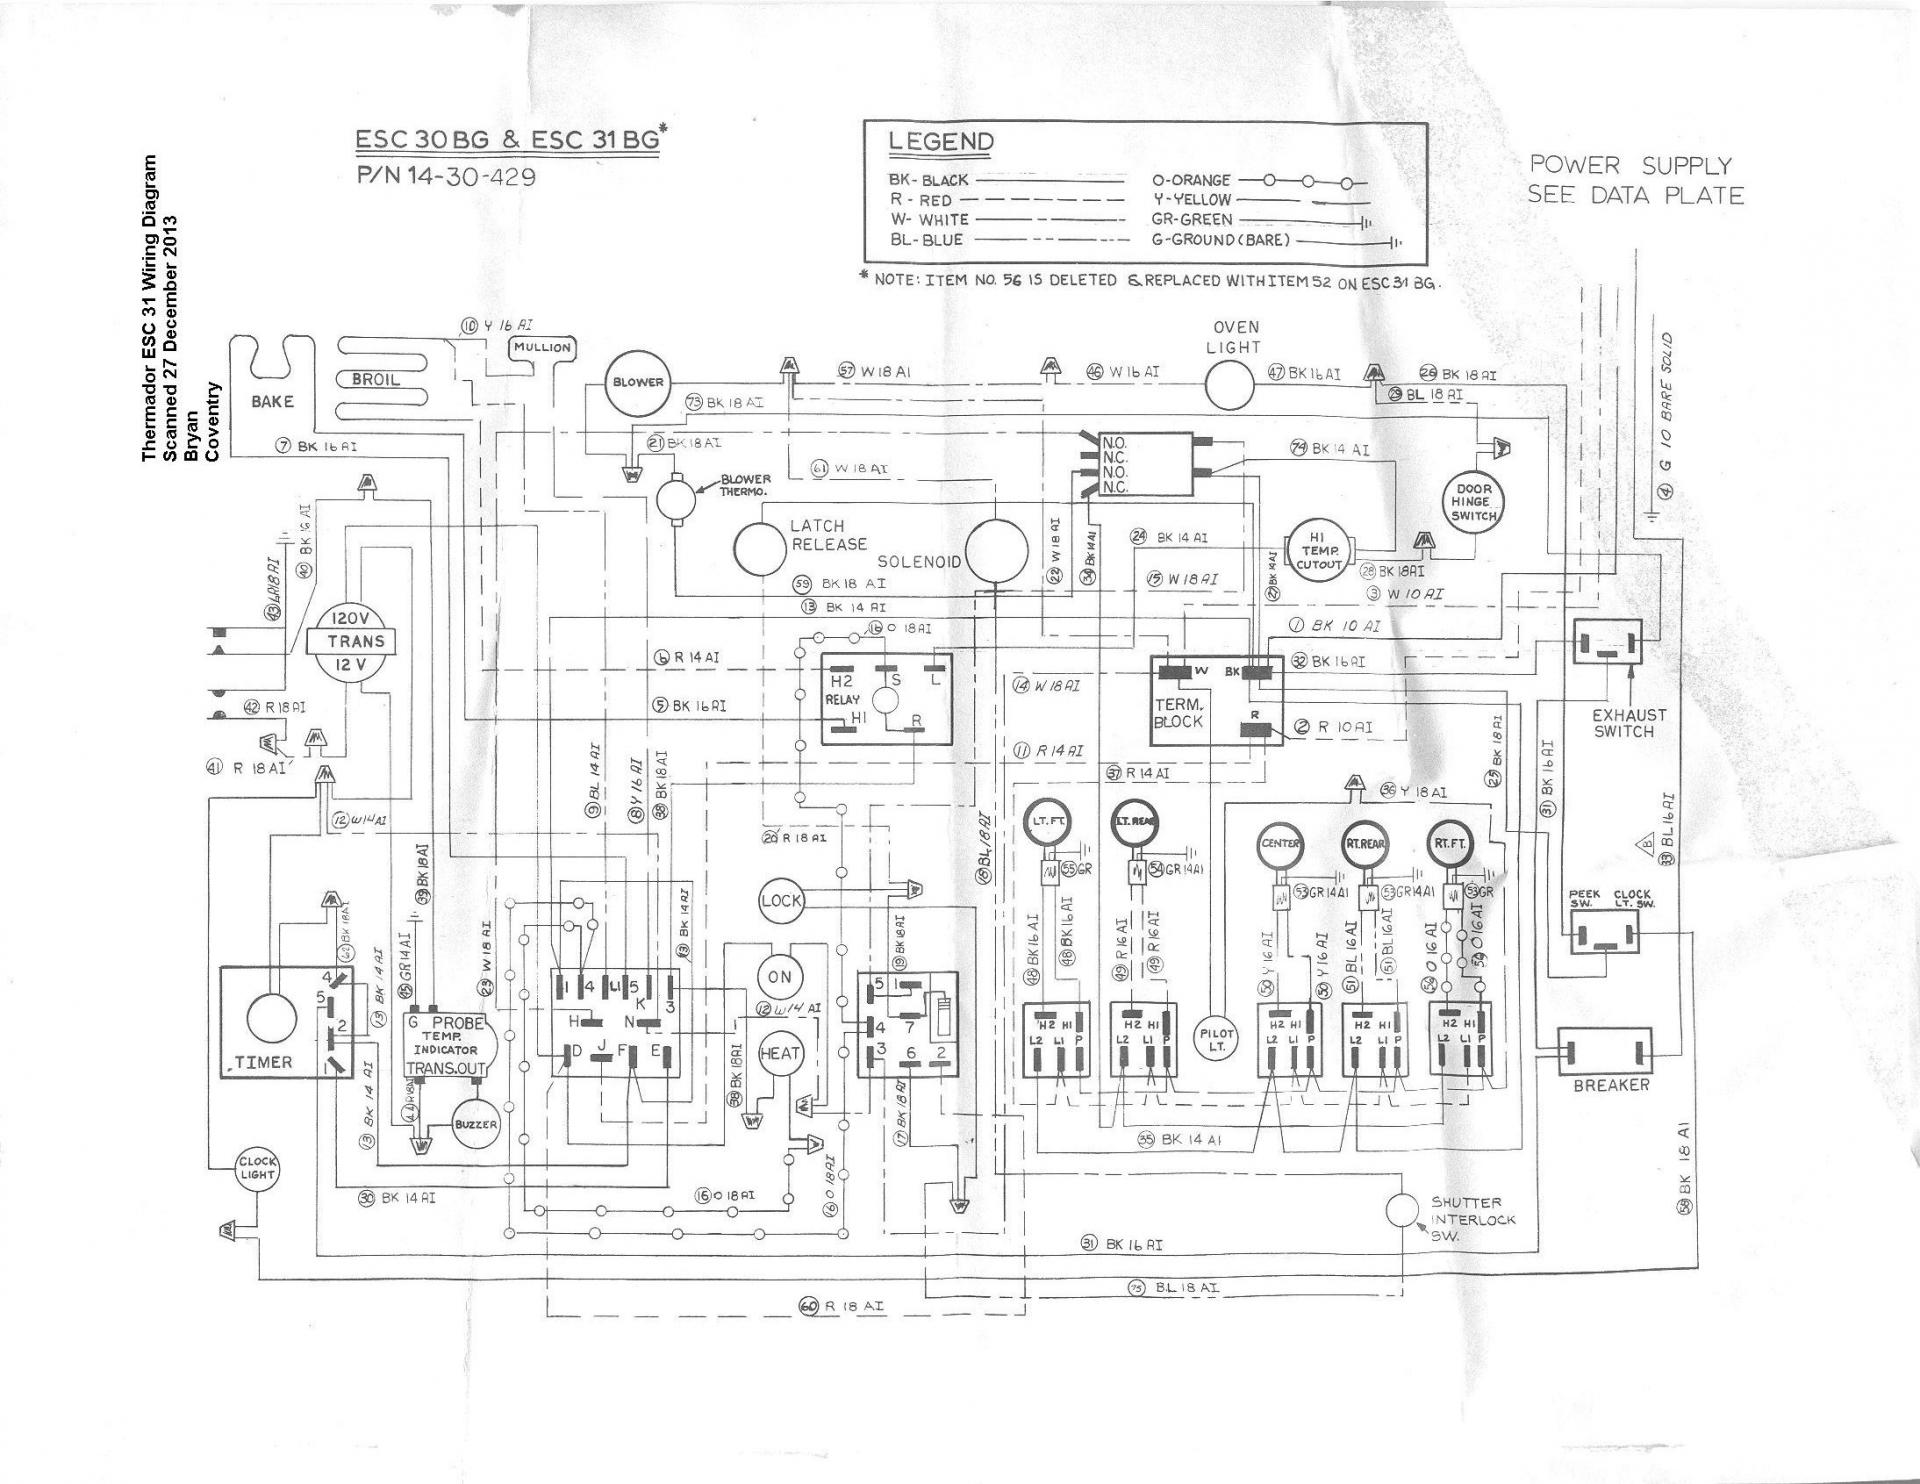 Thermador Electric Oven Only Gets Warm Baking Wiring Diagram Name